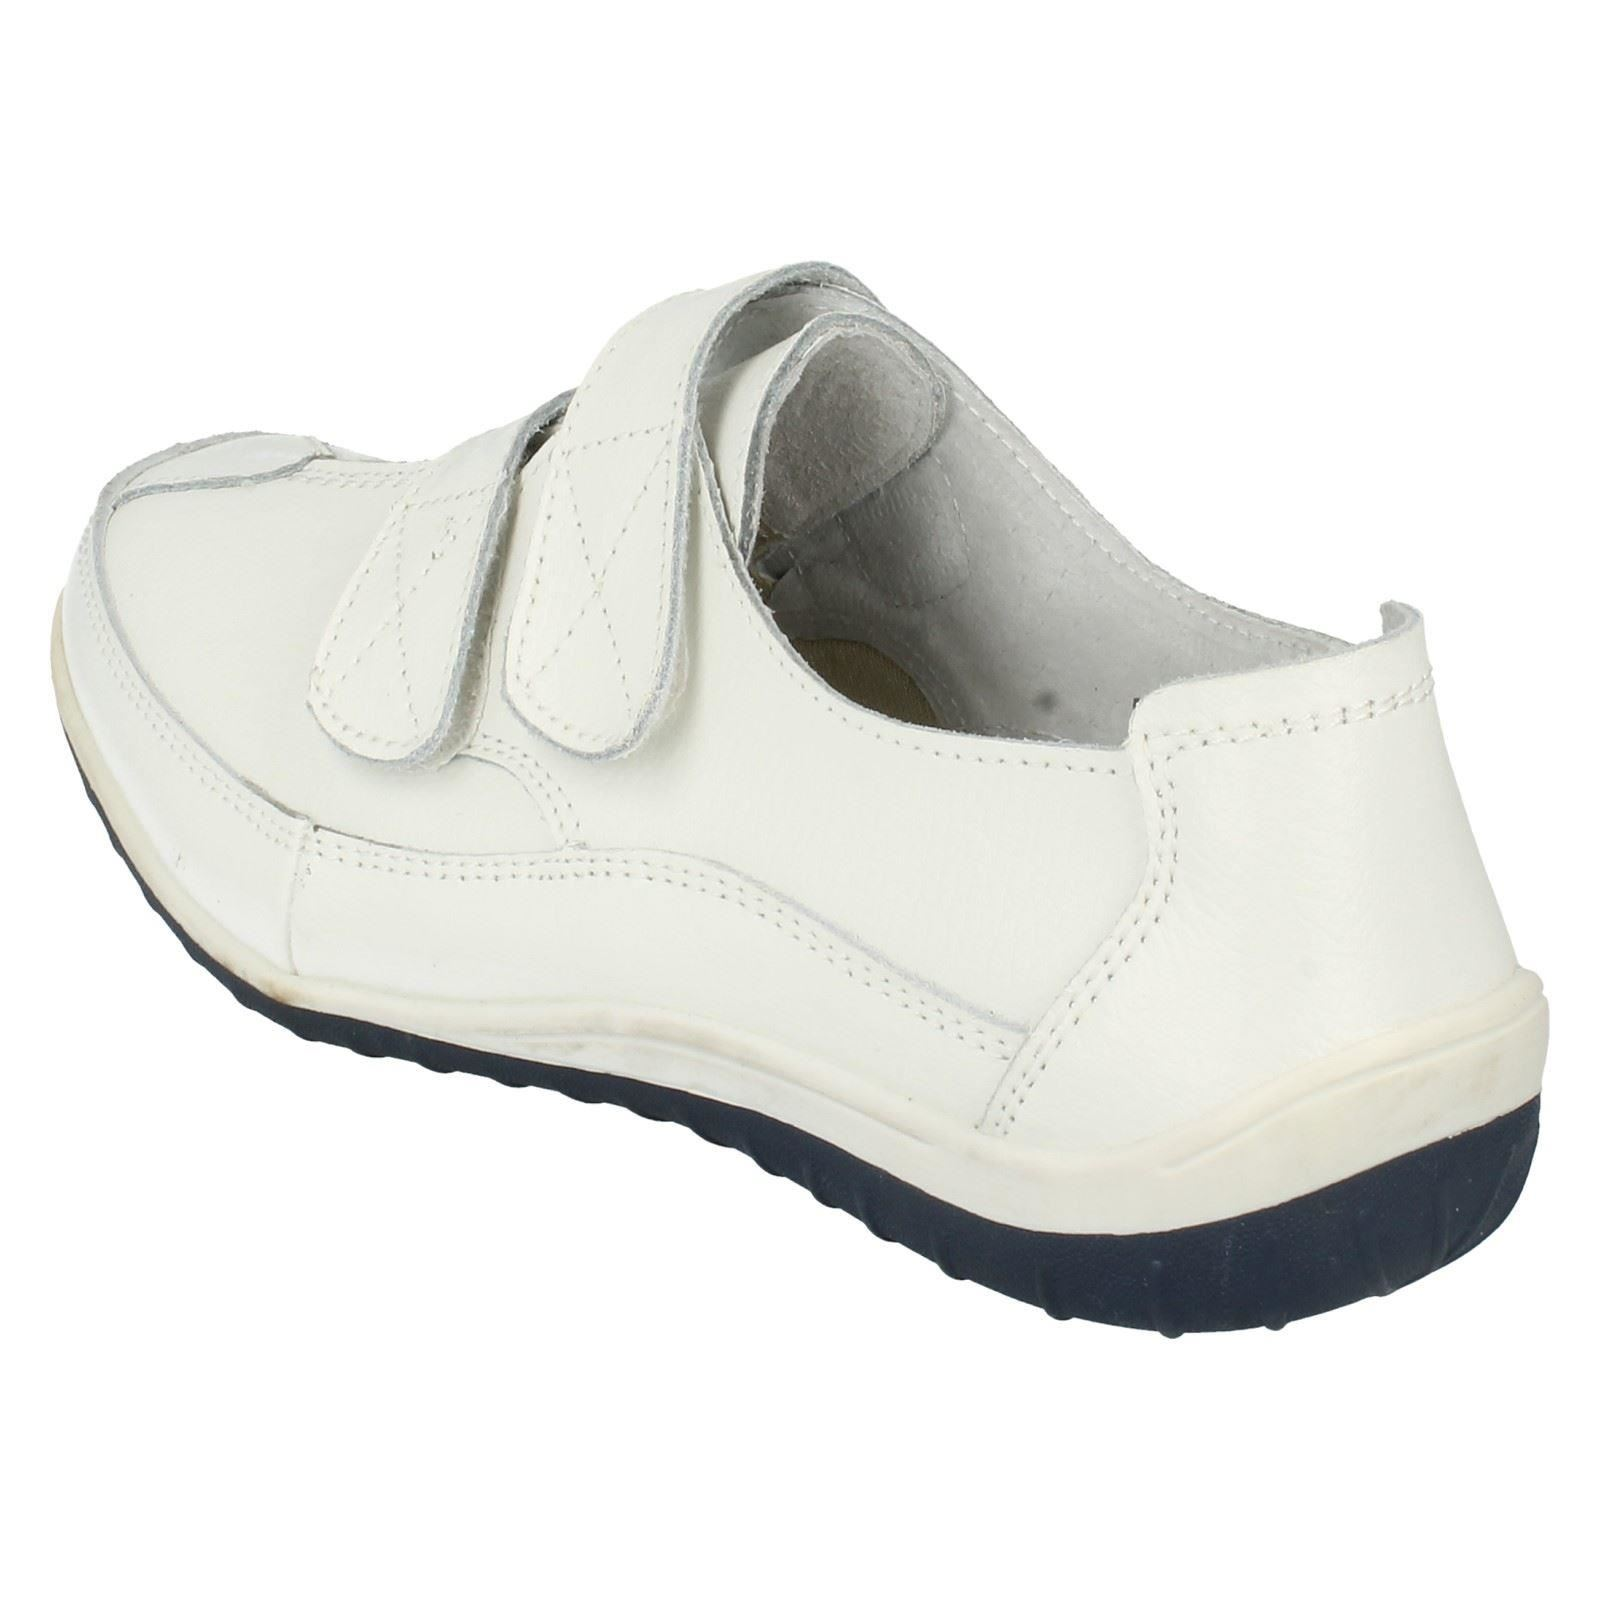 F3097 Ladies Down To Earth Shoes Styel